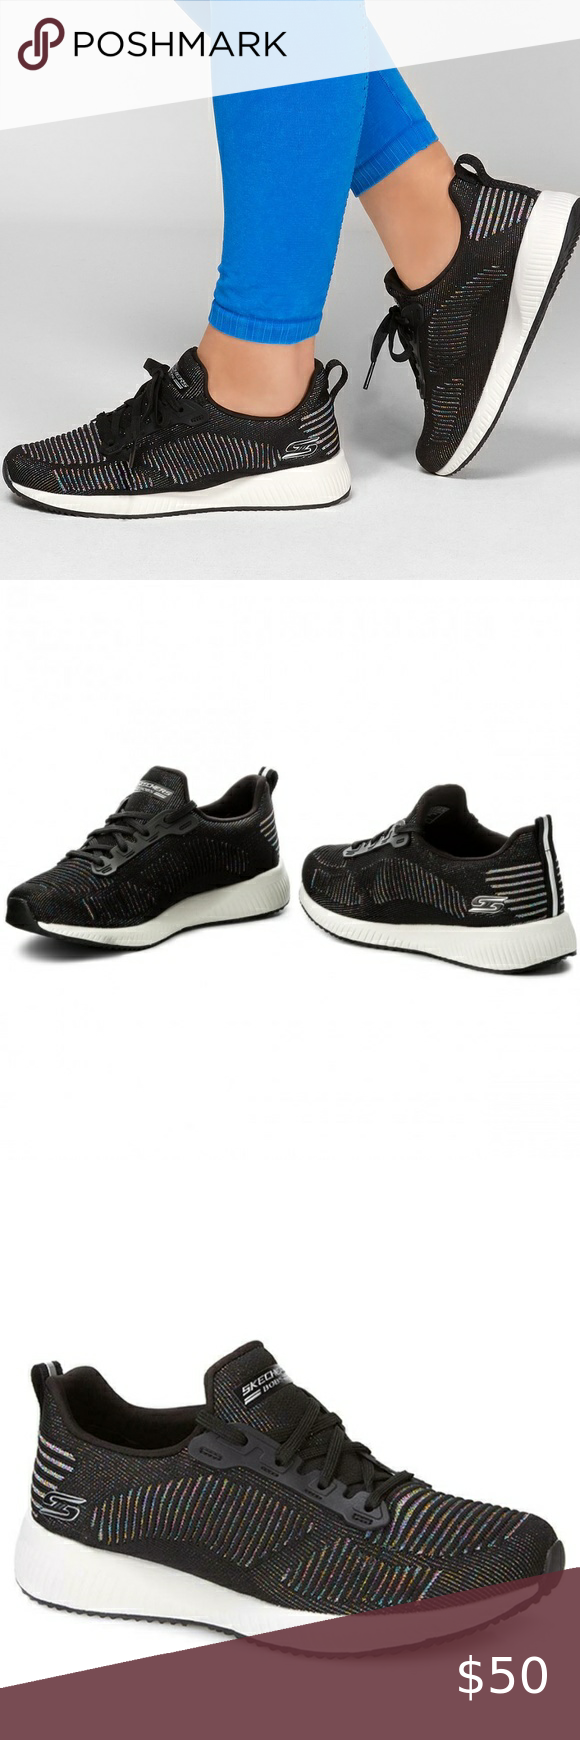 Skechers BOBS Sport Squad Multifaceted